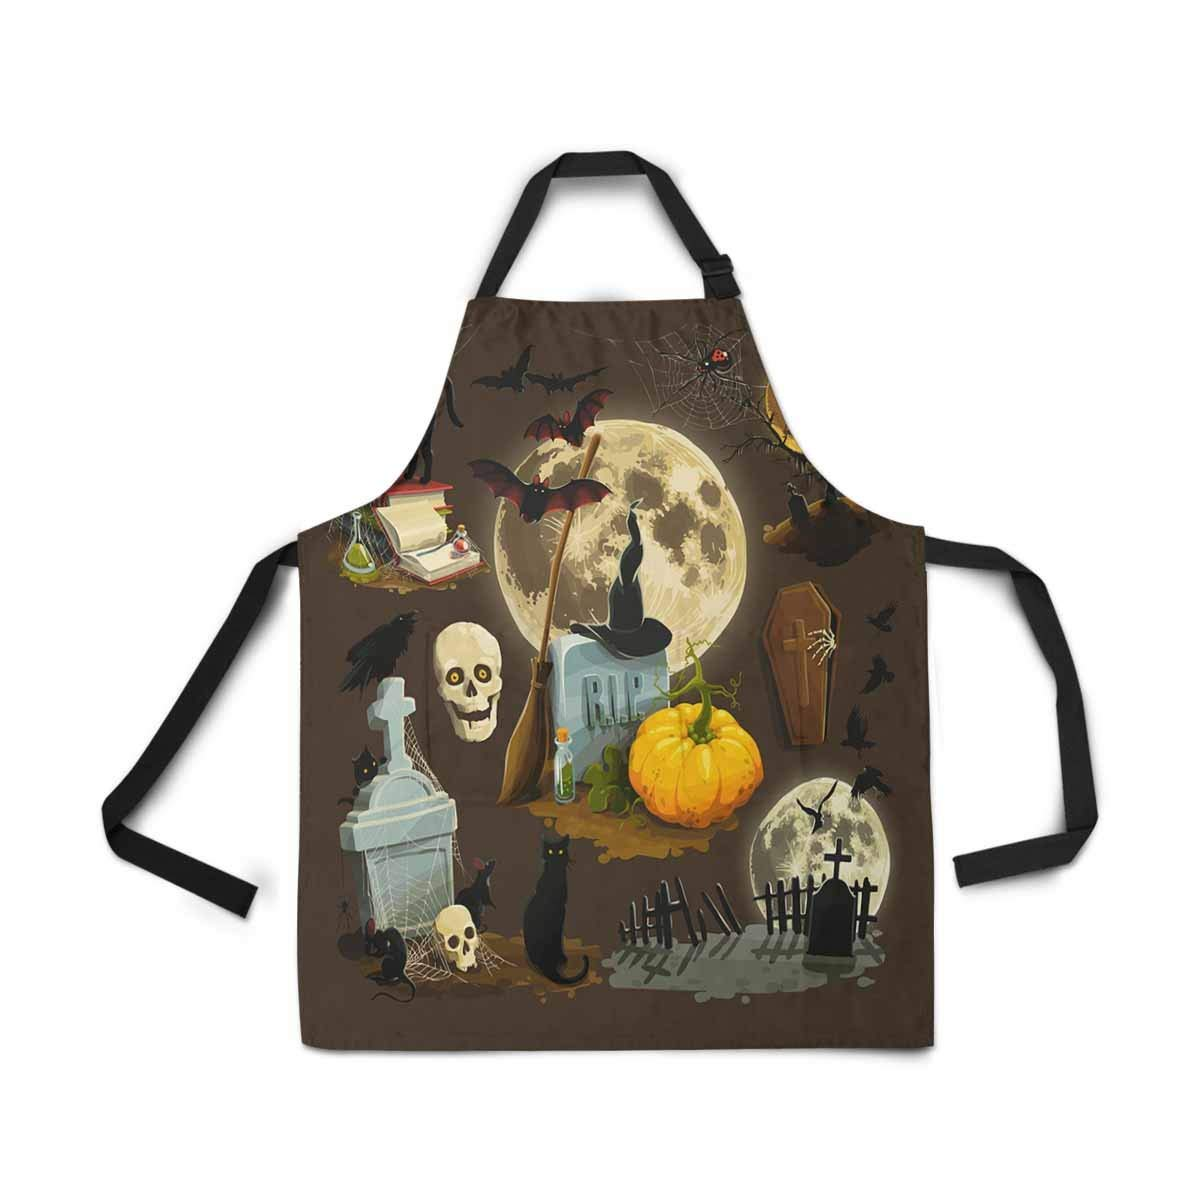 InterestPrint Halloween Celebration Pumpkin Apron Kitchen Cook for Women Men Girls Chef with Pockets, Halloween Holiday Funny Adjustable Bib Baking Paint Cooking Apron Dress